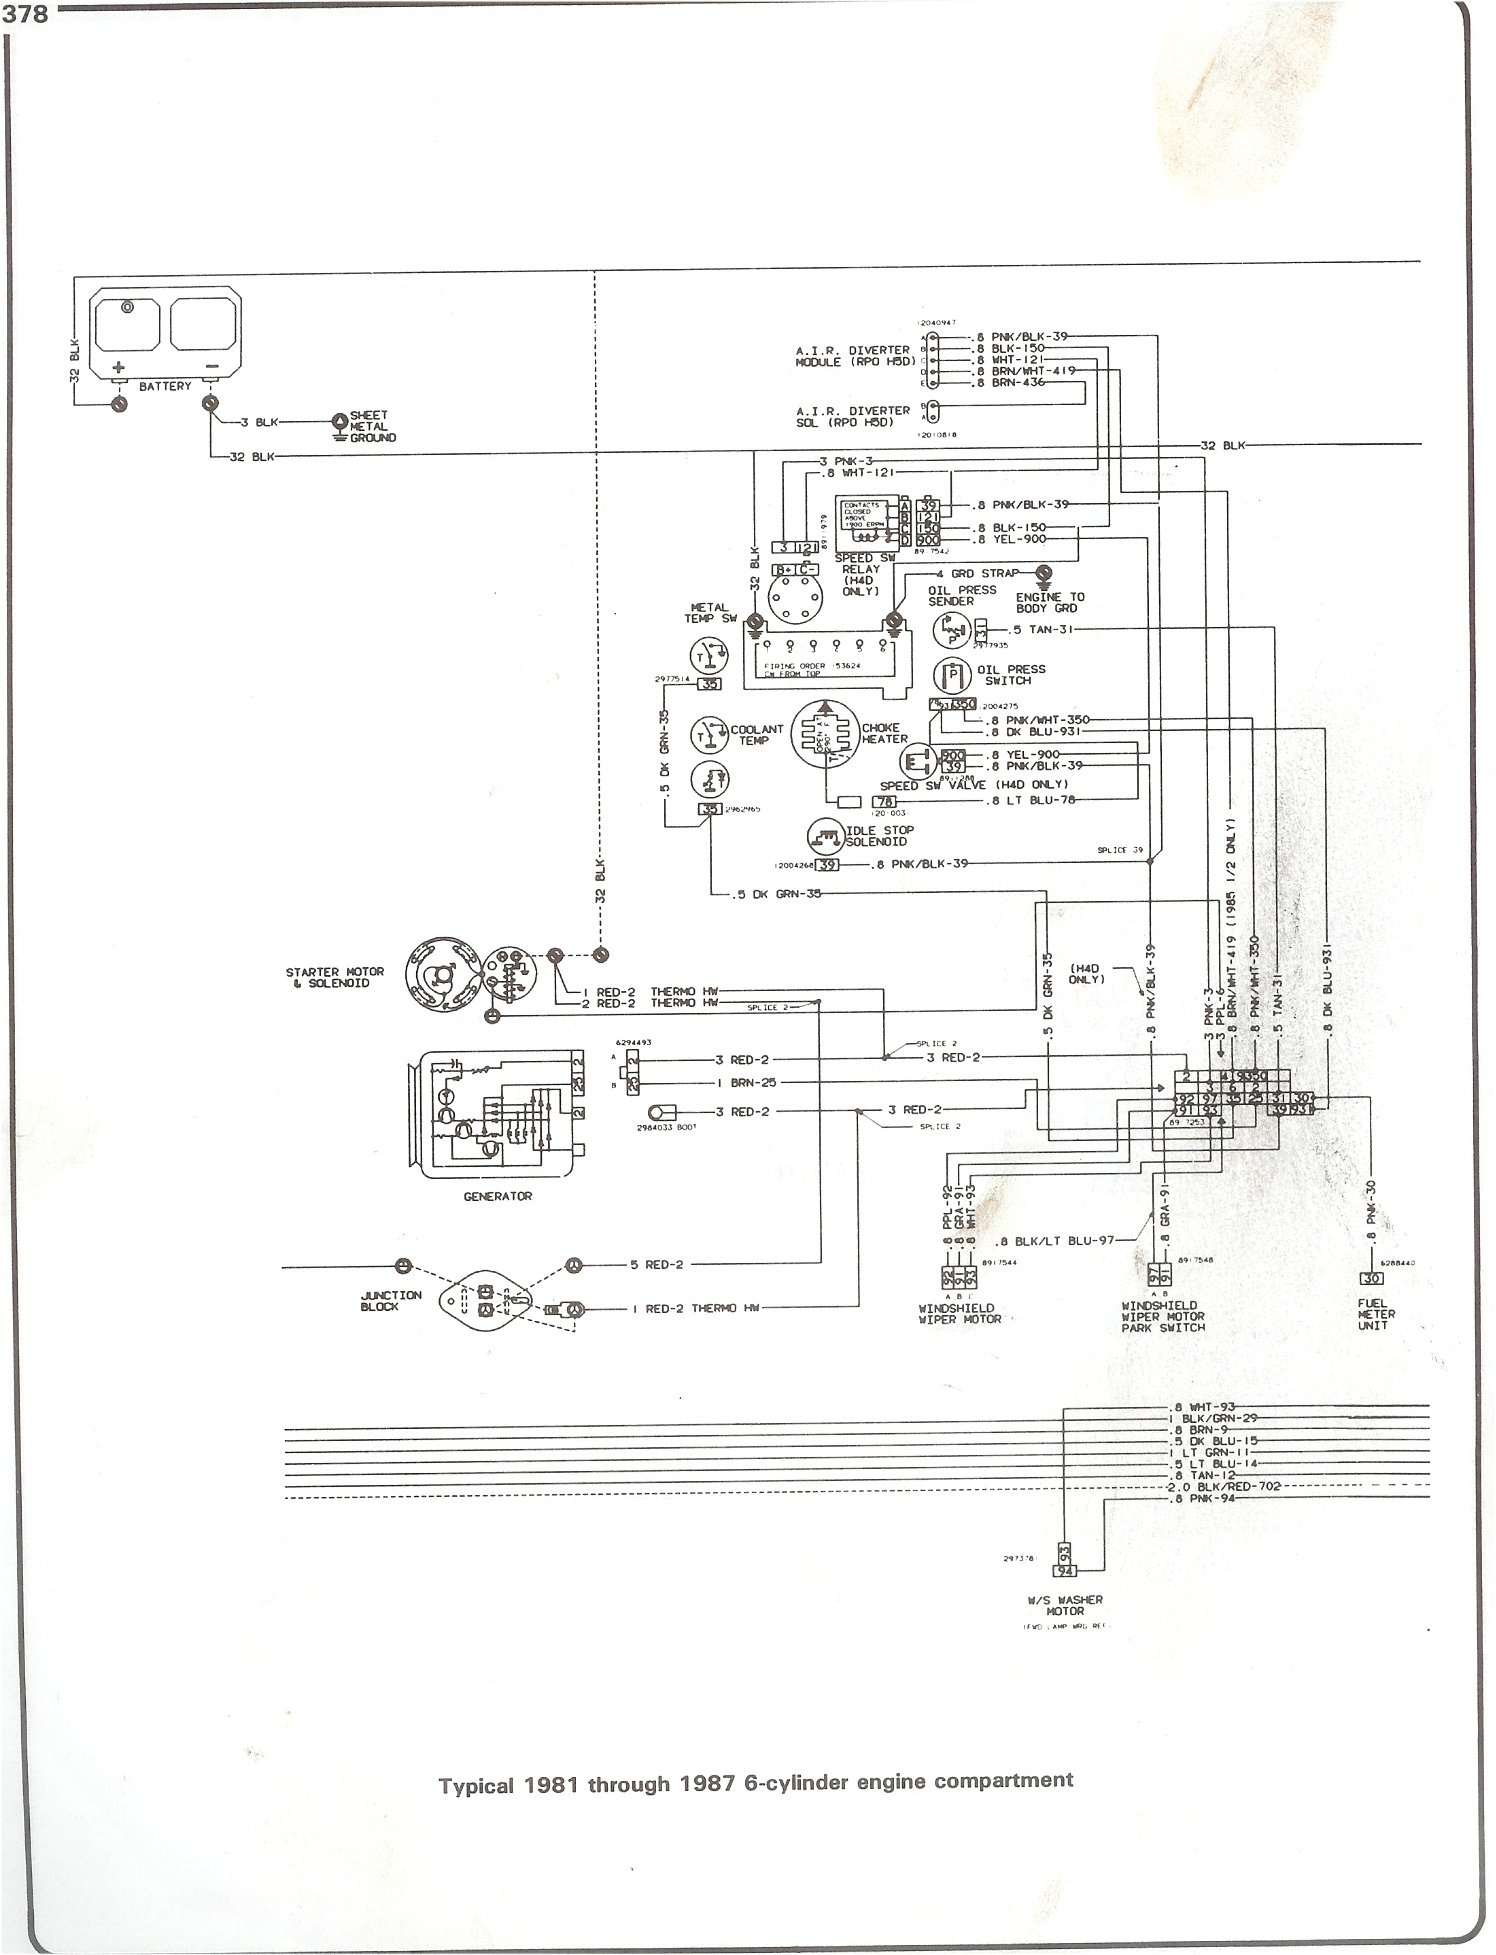 87 chevy truck instrument panel wiring diagram get free